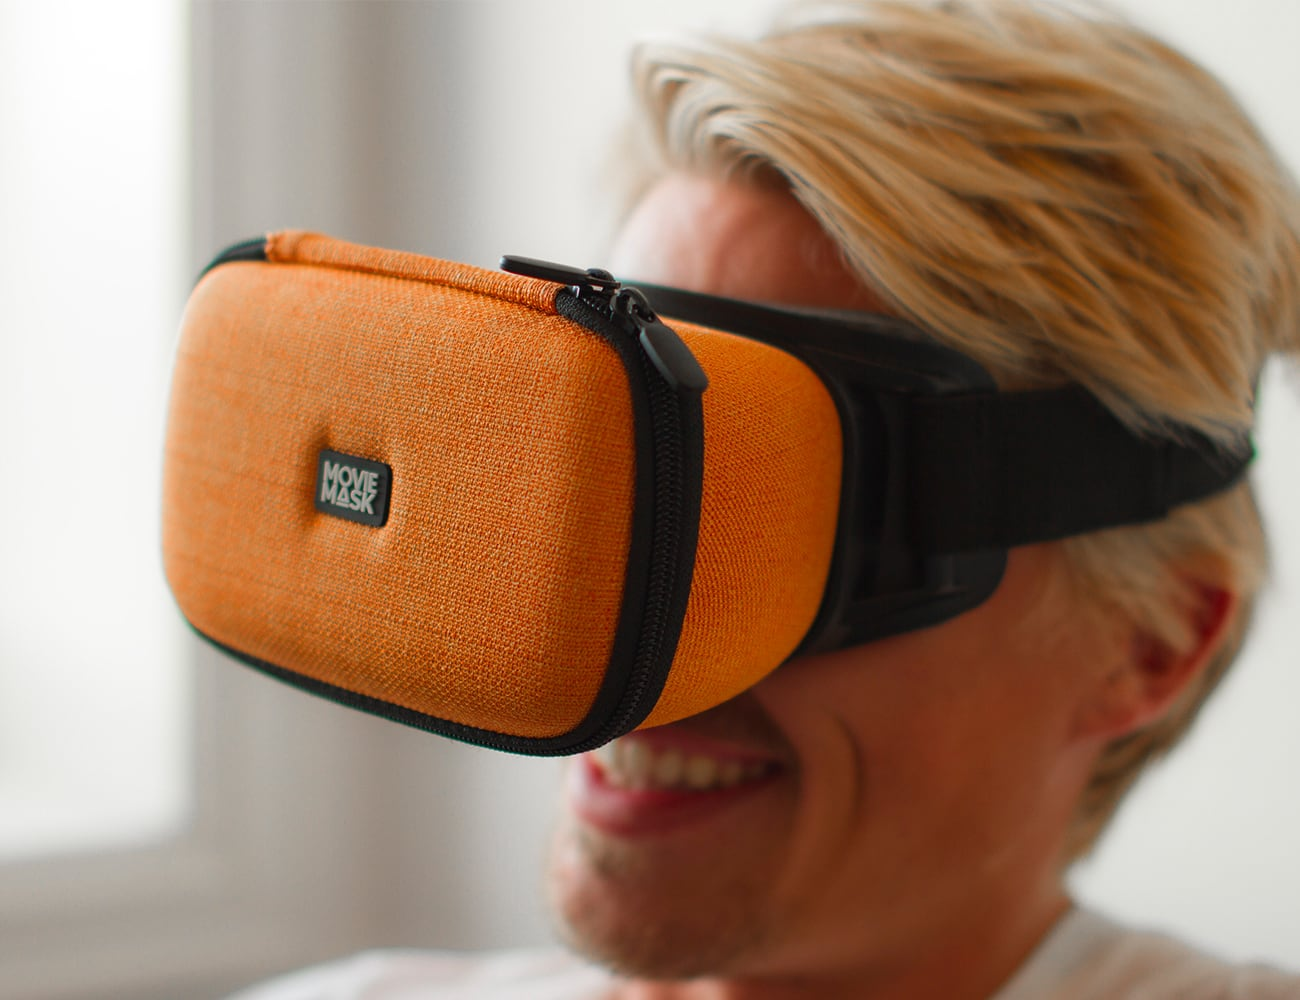 MovieMask Portable Cinema Wearable